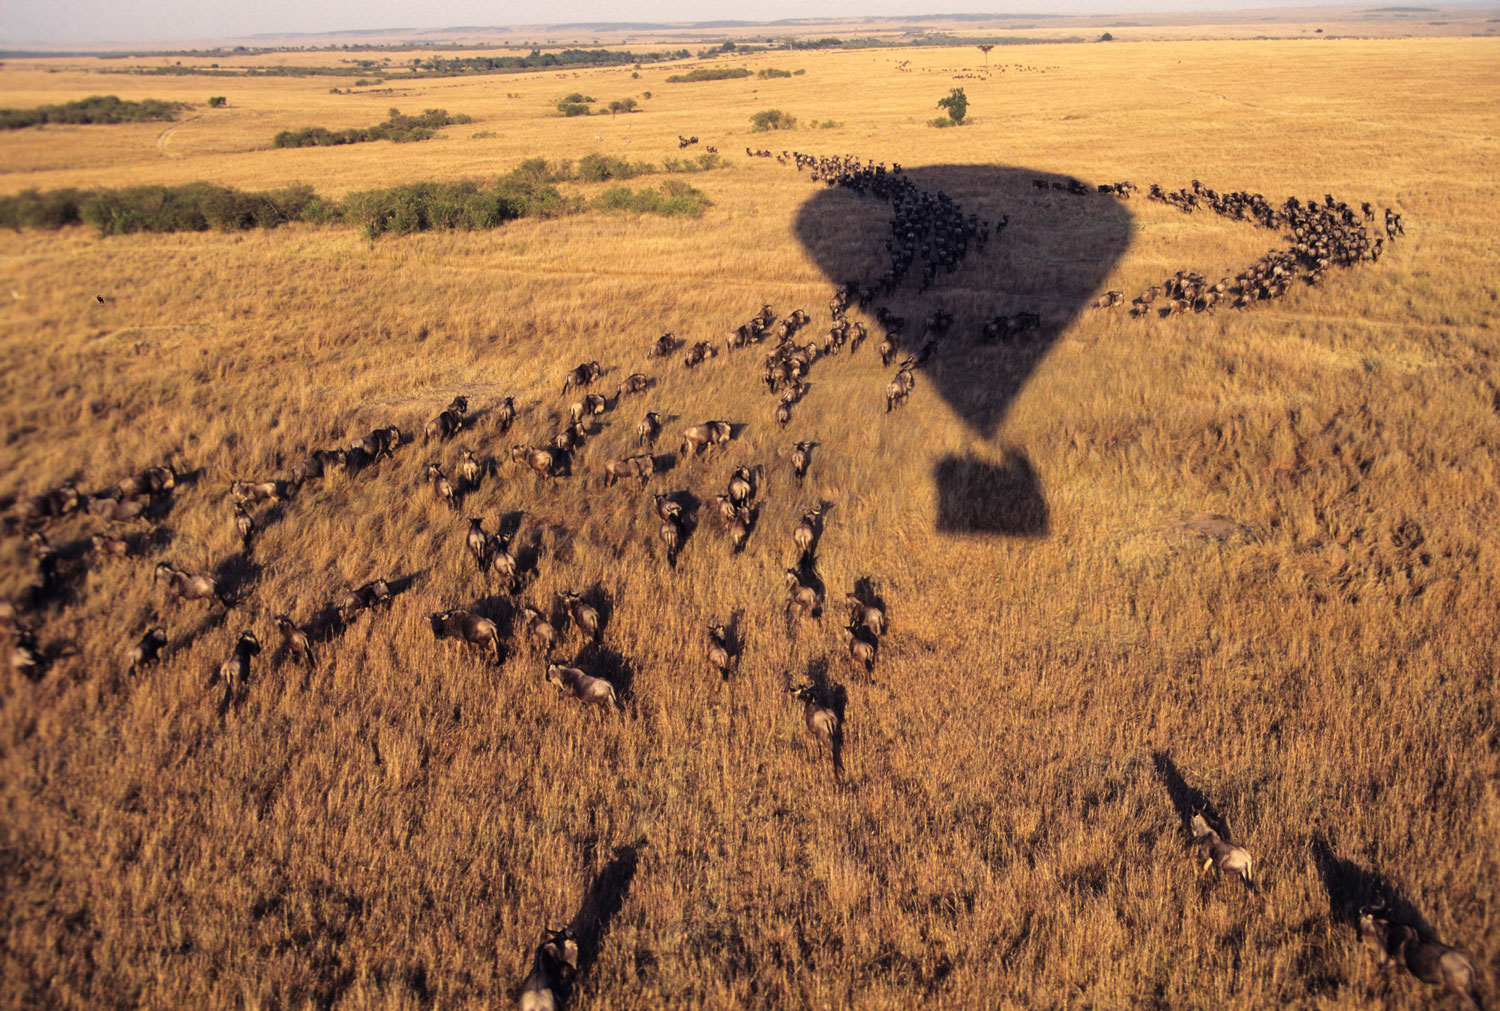 Aerial view of hot air balloon flying over a herd of wildebeests in the Maasai Mara, Kenya